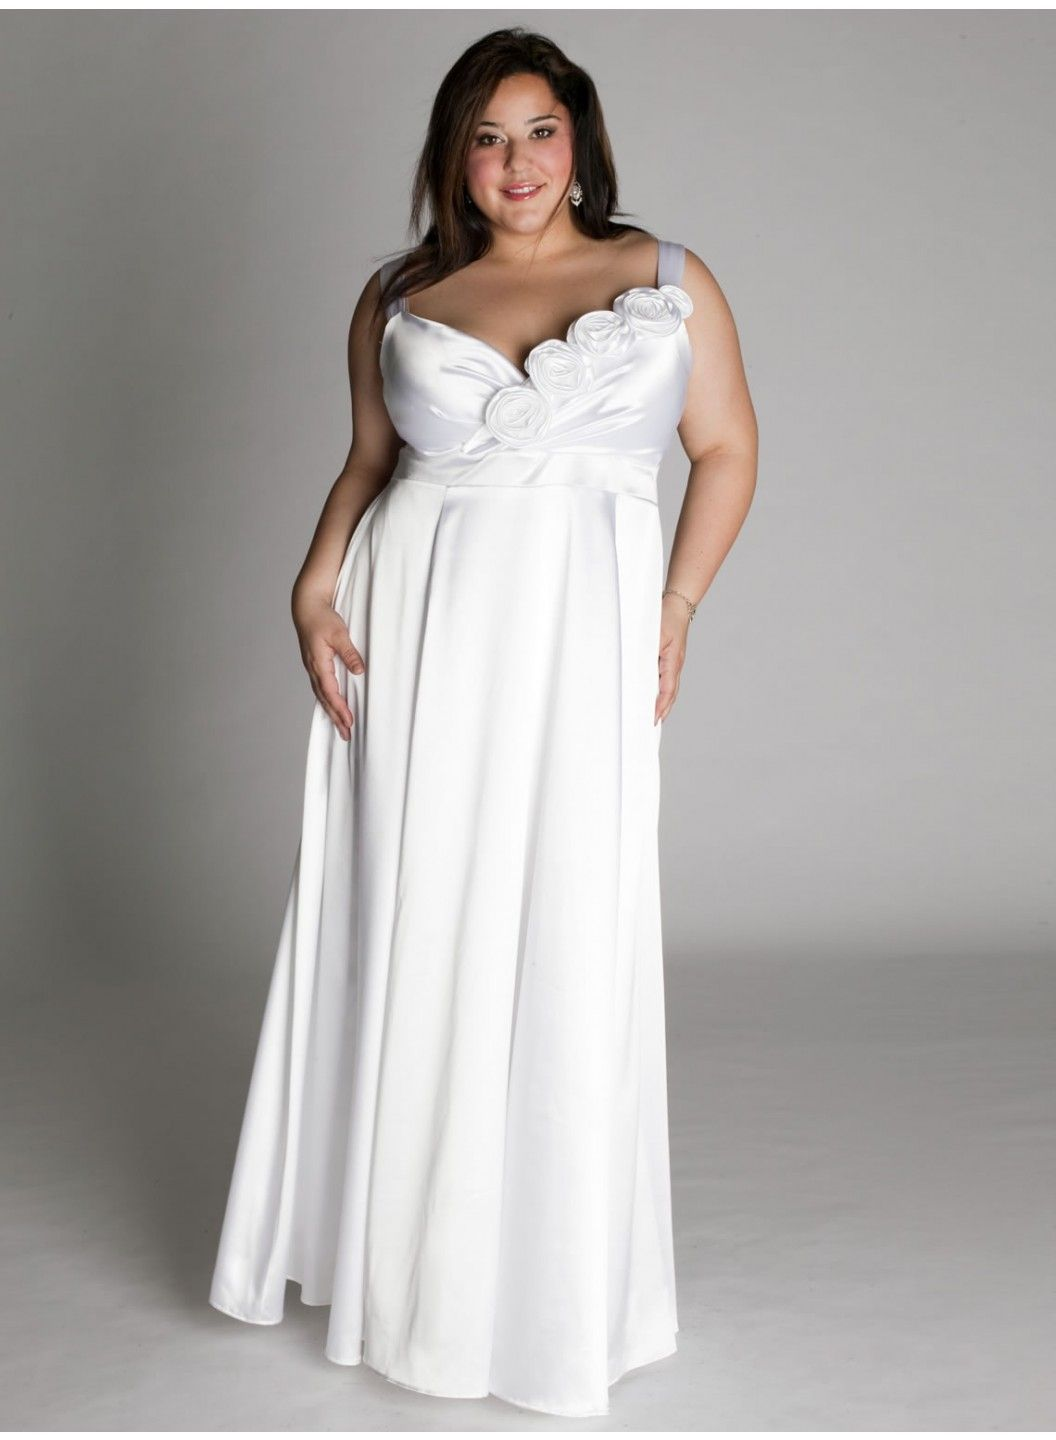 Wedding Dresses and Gowns | PLUS SIZE WEDDING GOWNS | Pinterest ...